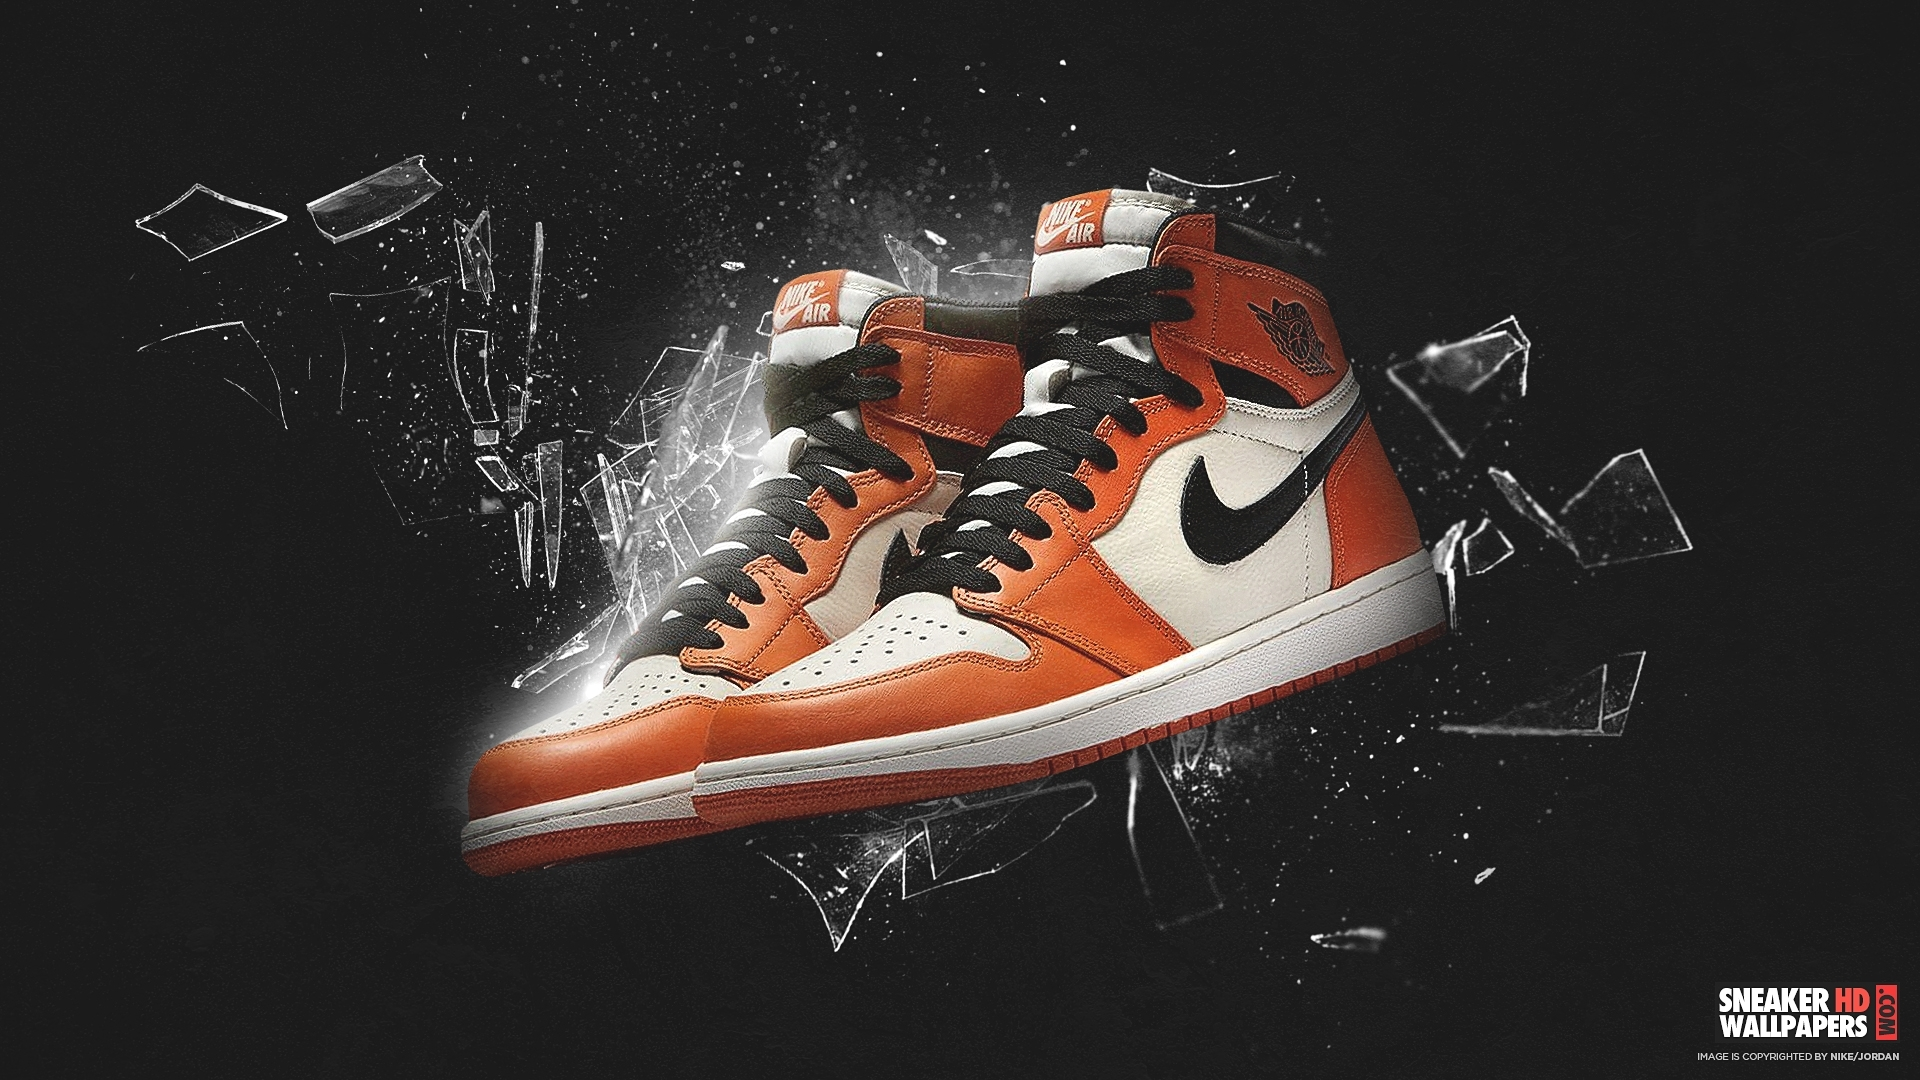 sneakerhdwallpapers – your favorite sneakers in hd and mobile